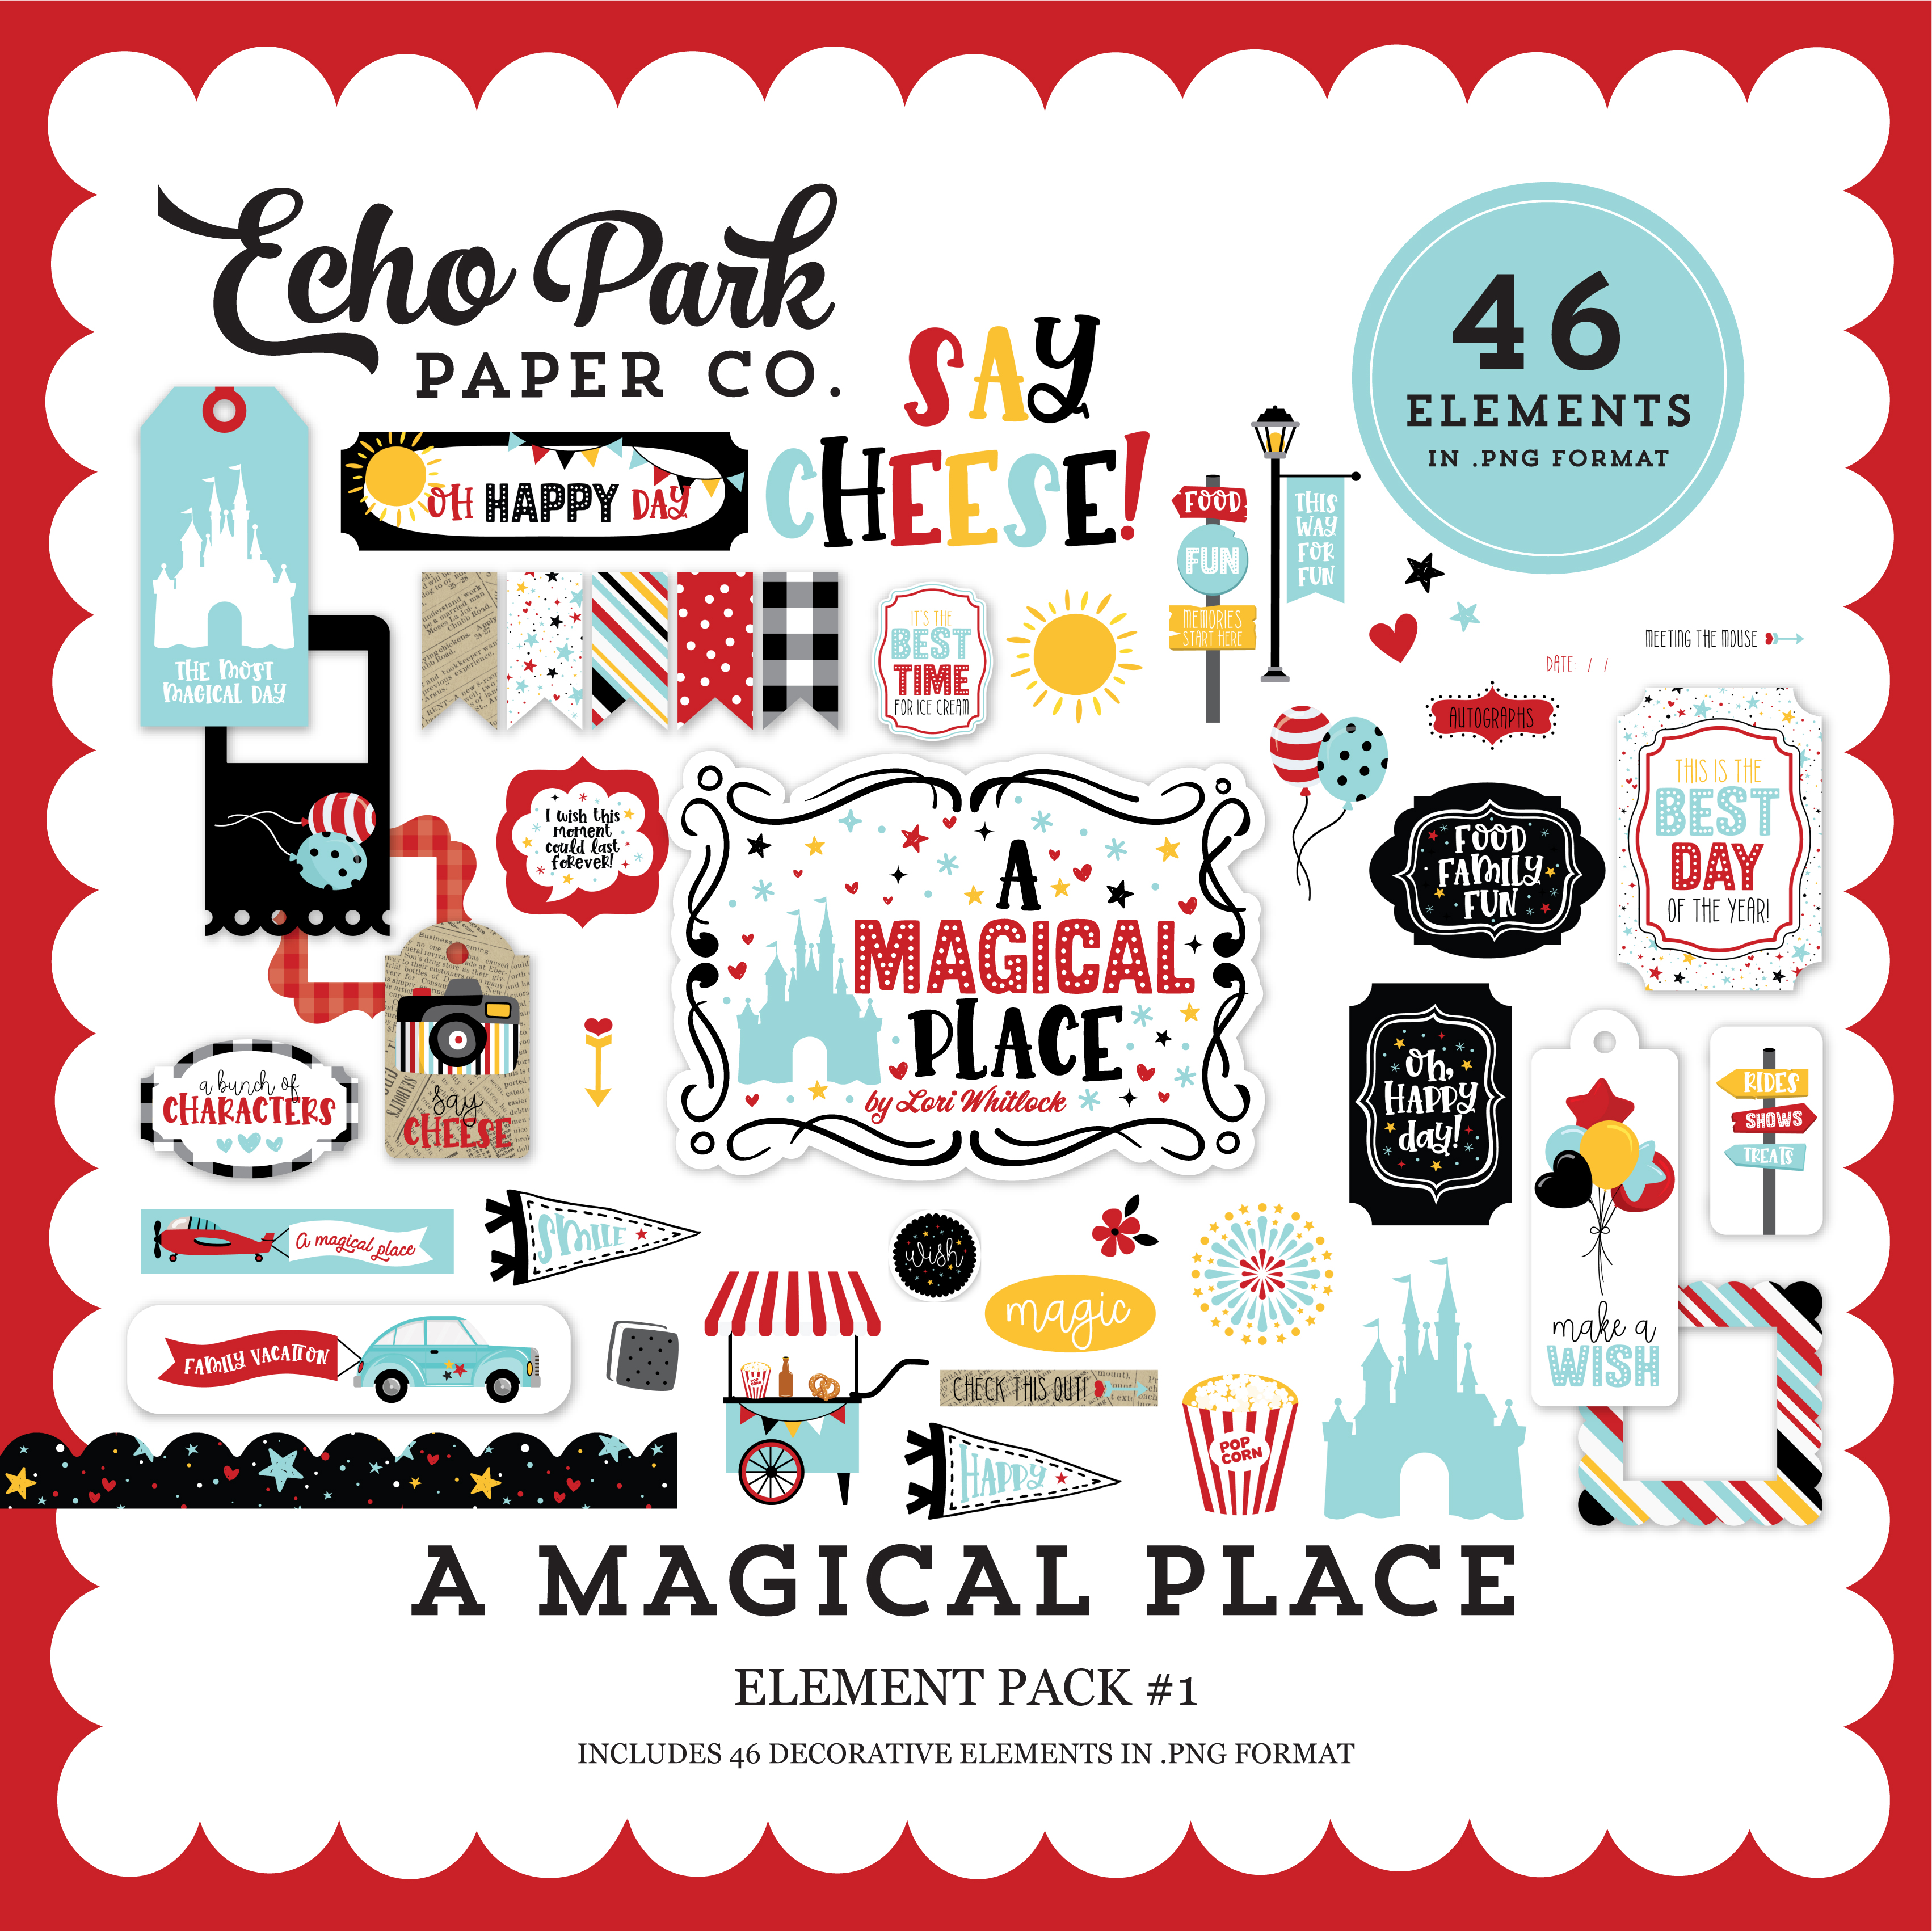 A Magical Place Element Pack #1